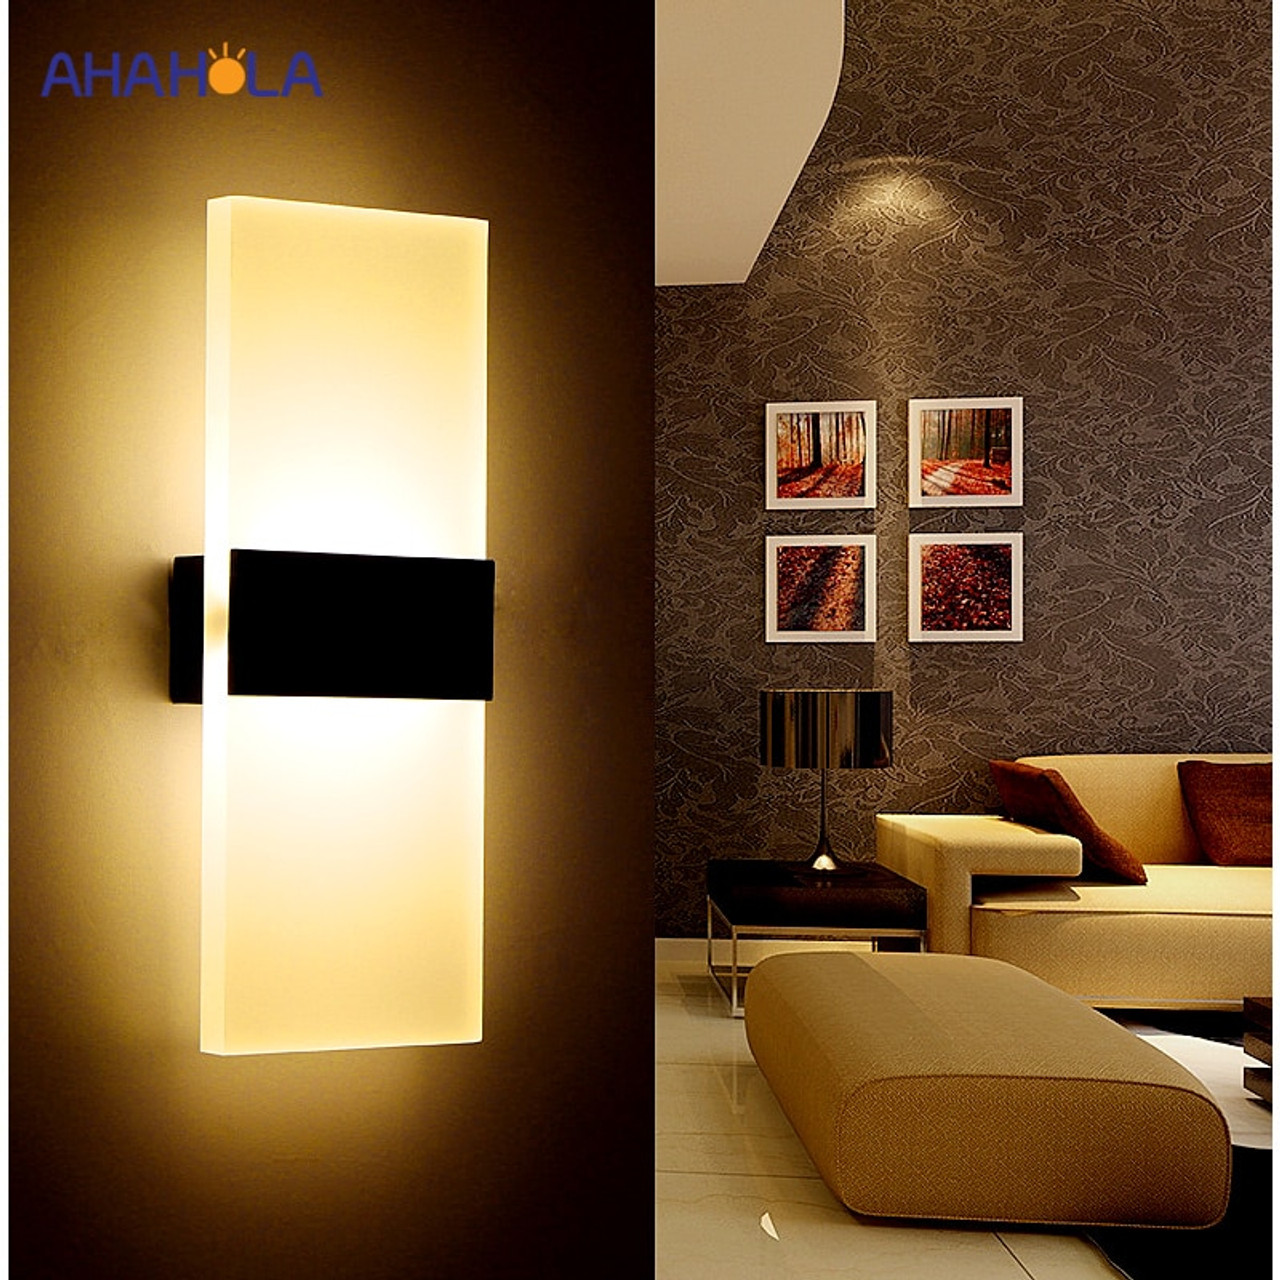 Image of: Modern Wall Light Led Indoor Wall Lamps Led Wall Sconce Lamp Lights For Bedroom Living Room Stair Mirror Light Lampara De Pared Onshopdeals Com